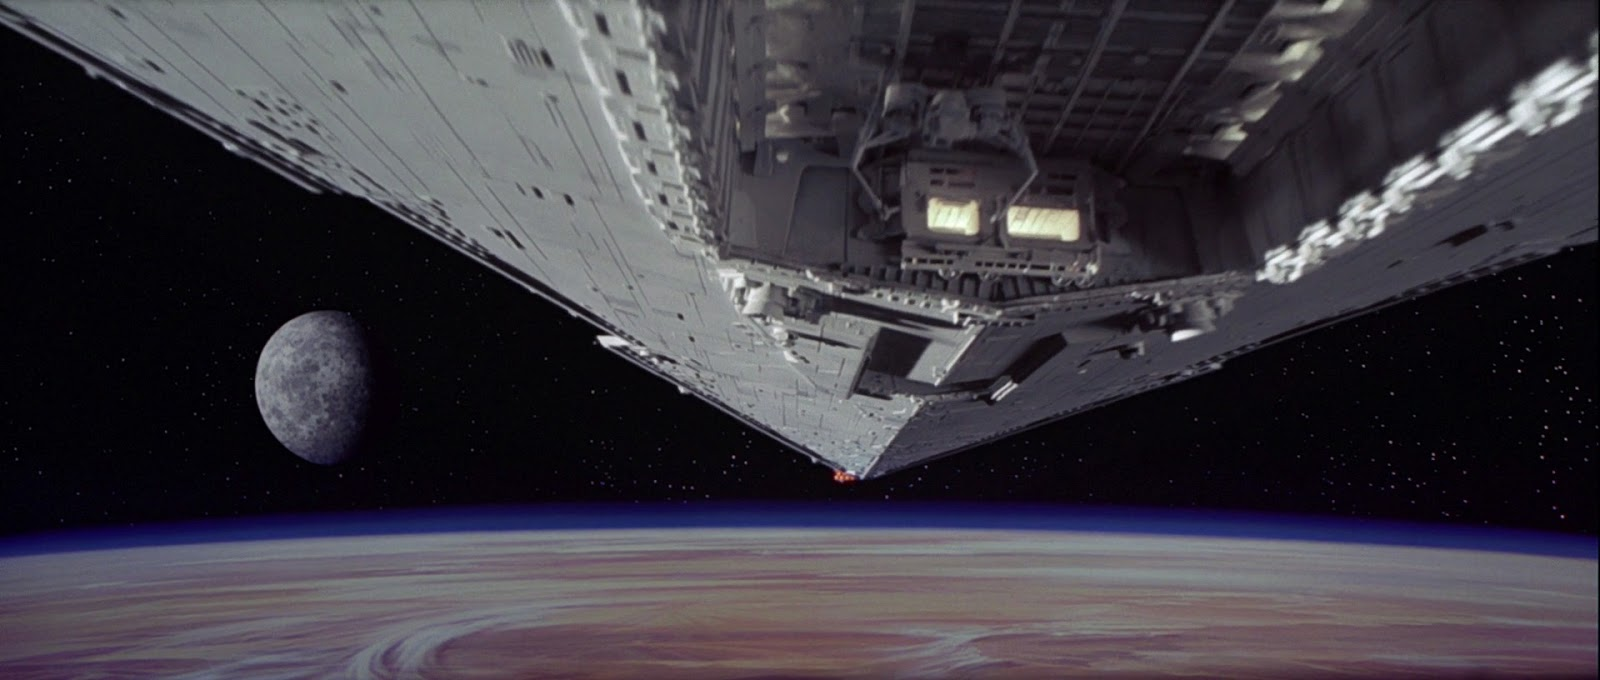 star-wars4-movie-screencaps.com-32